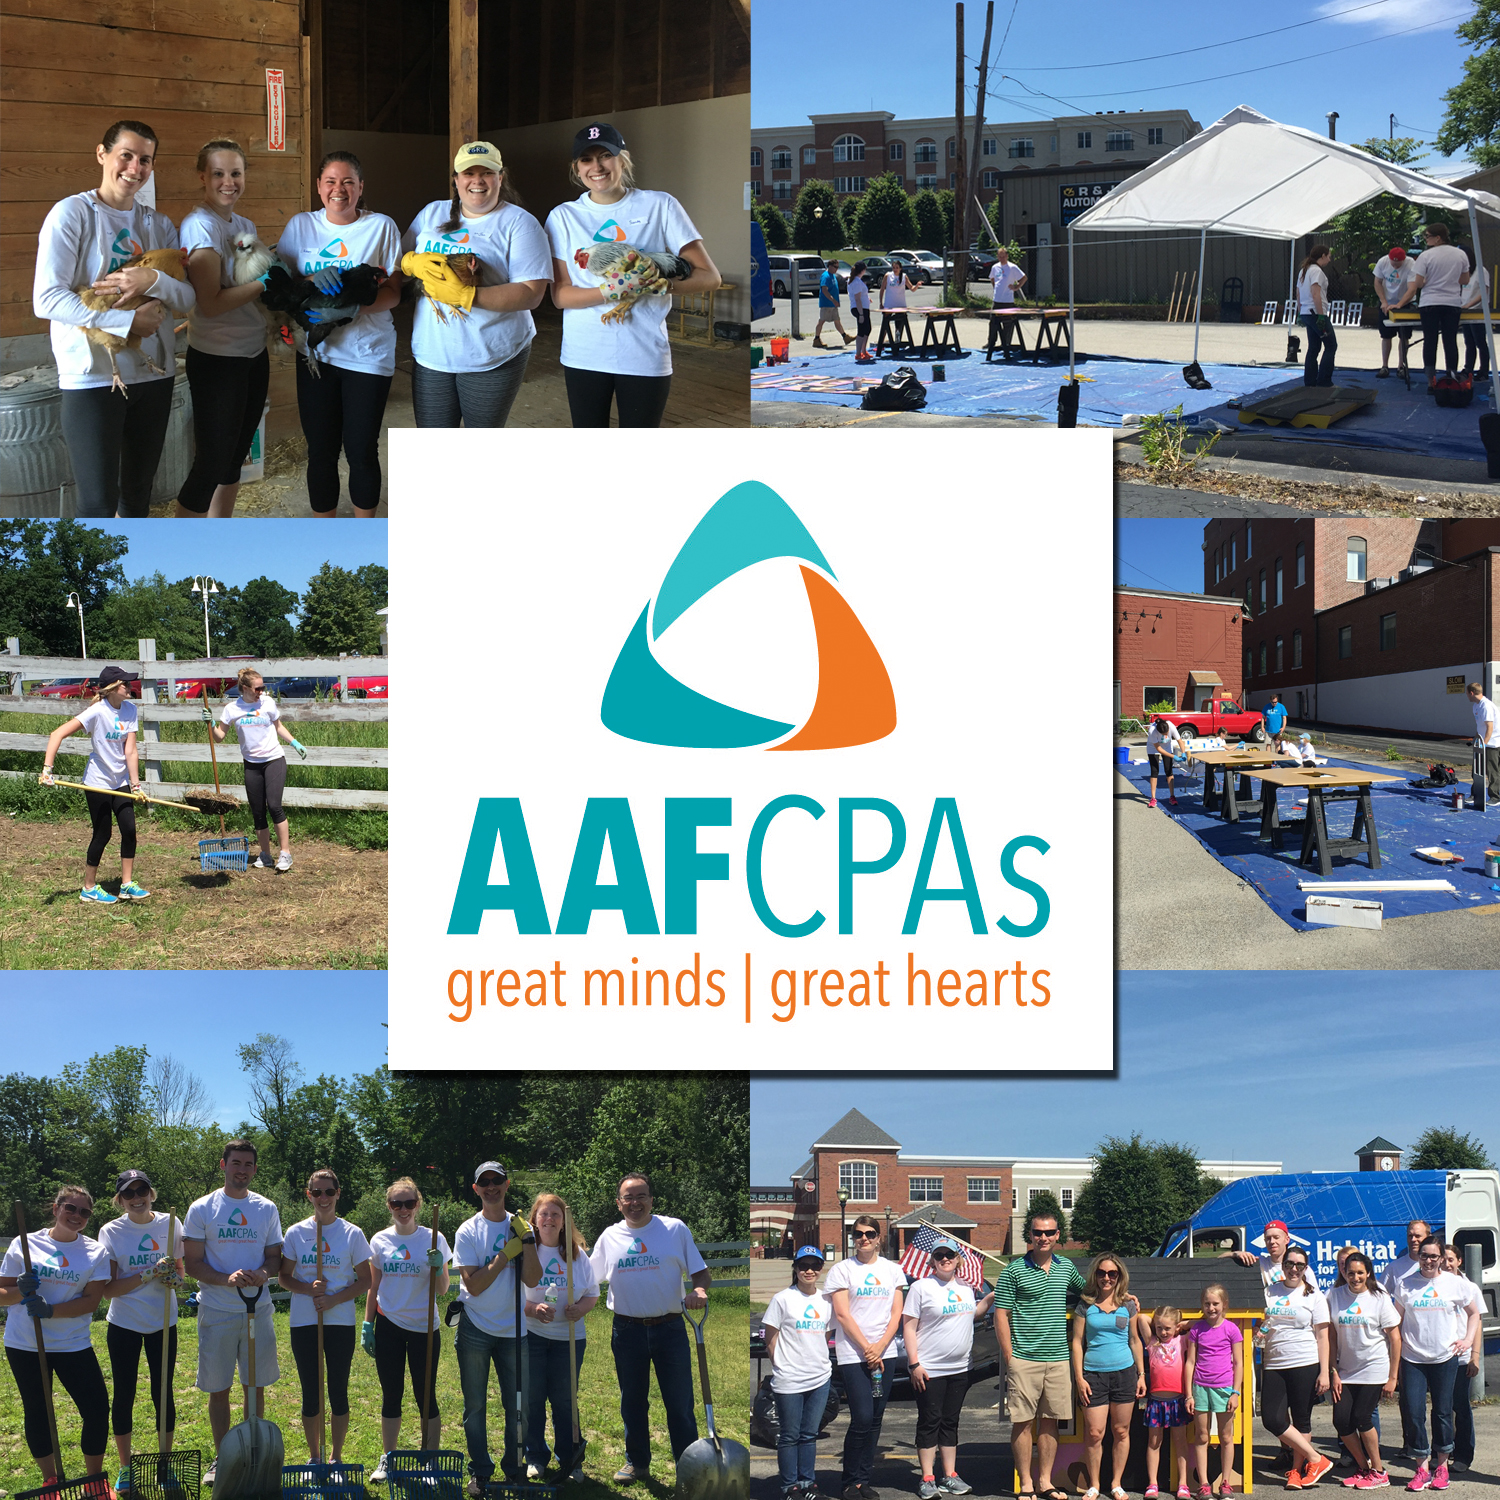 AAFCPAs Participates in 7th Annual MSCPA Day of Service